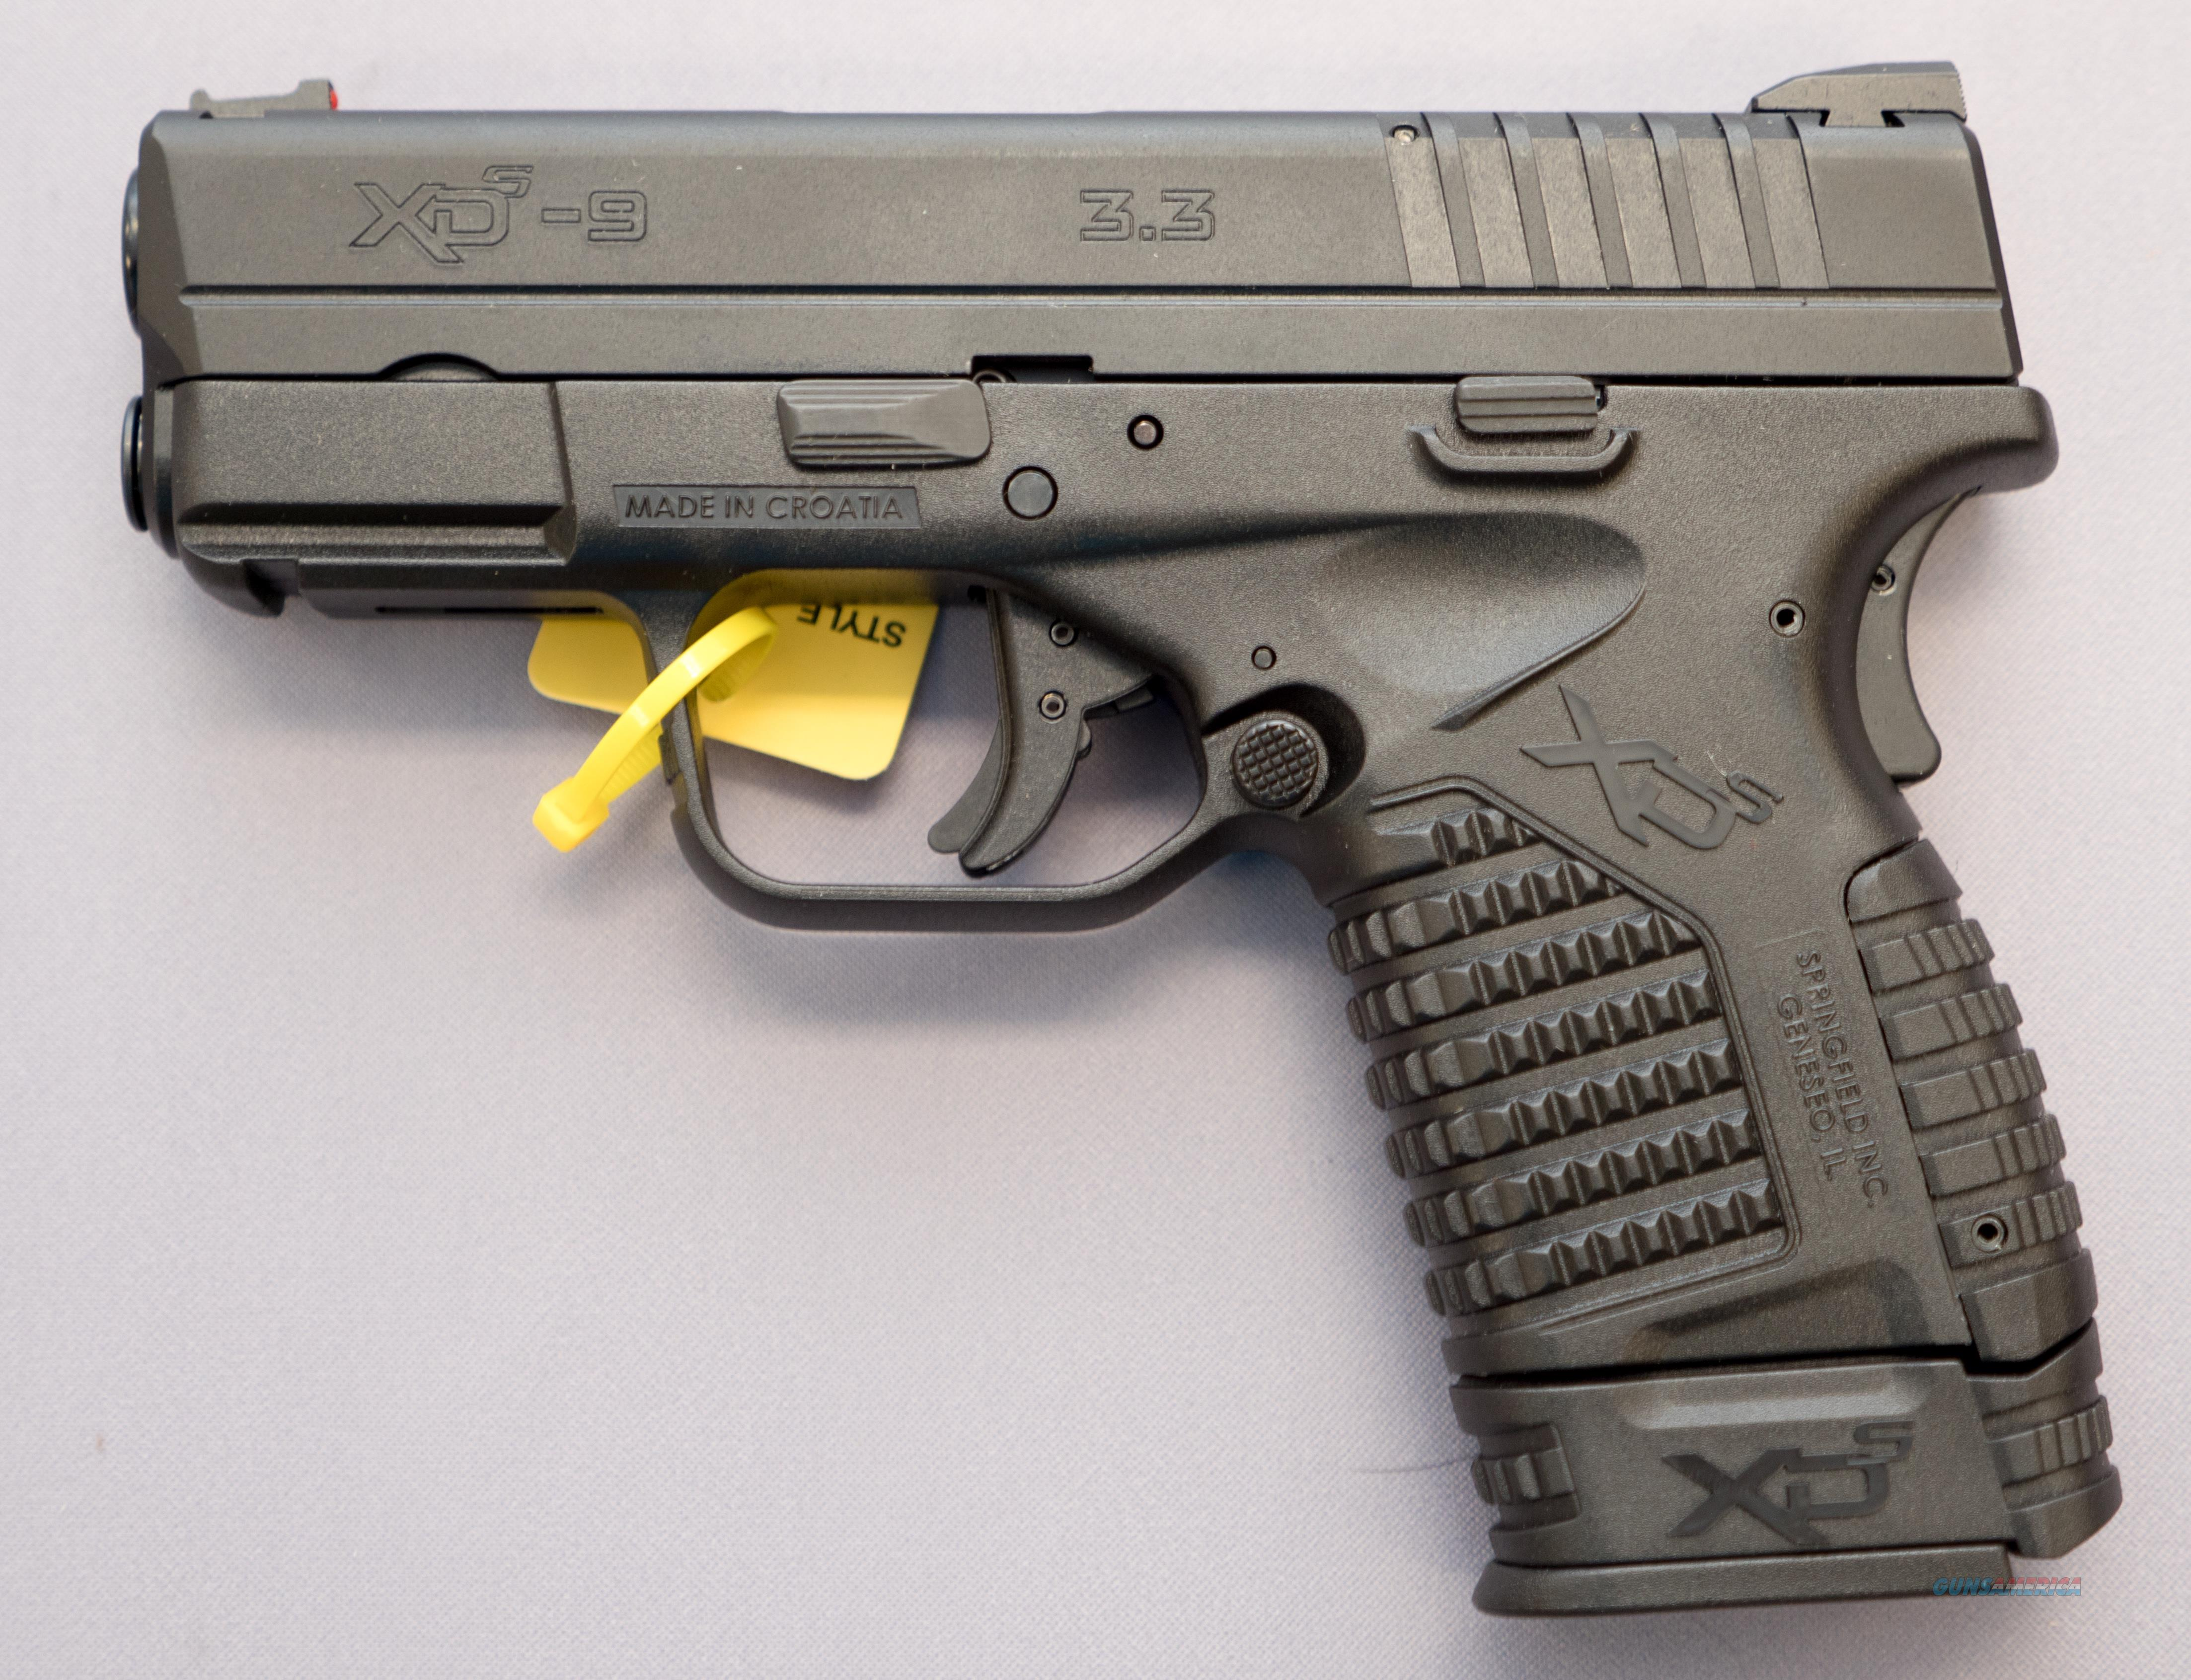 XDS-9 3.3 XDS9339BE 9mm 8+1  $15 Flat rate Shipping  Guns > Pistols > Springfield Armory Pistols > XD-S